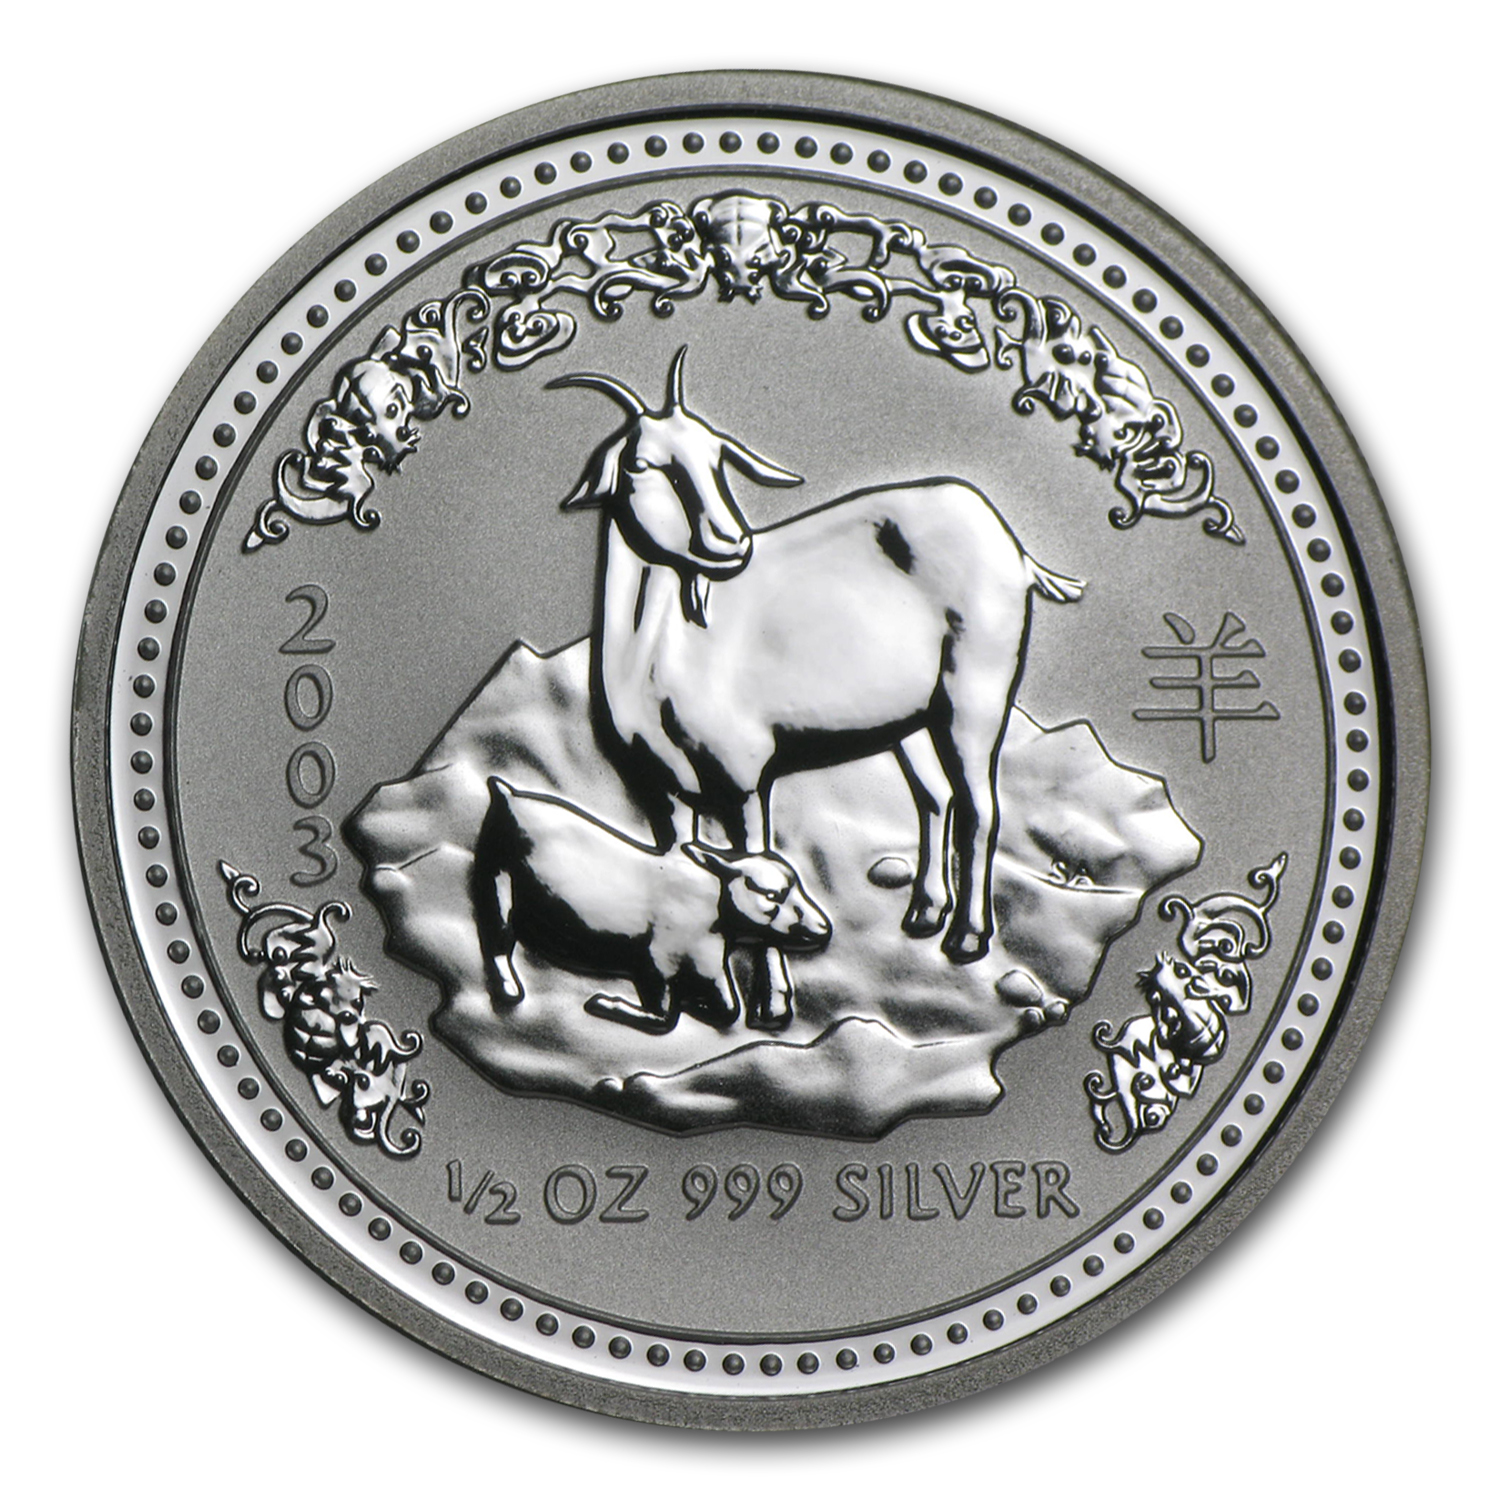 2003 1/2 oz Silver Australian Year of the Goat BU